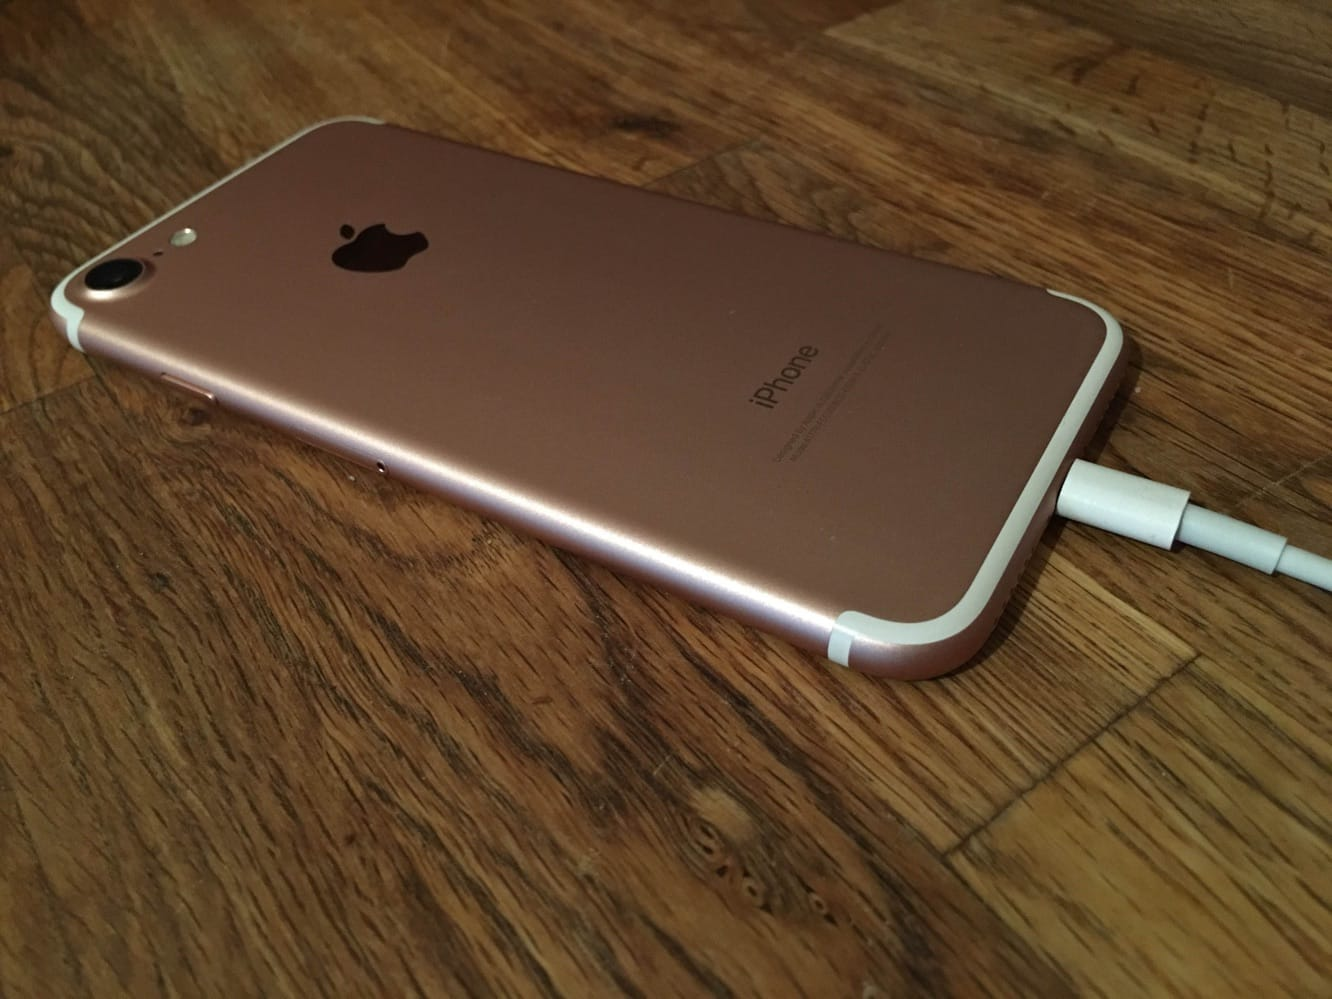 Plugging your iPhone in silently